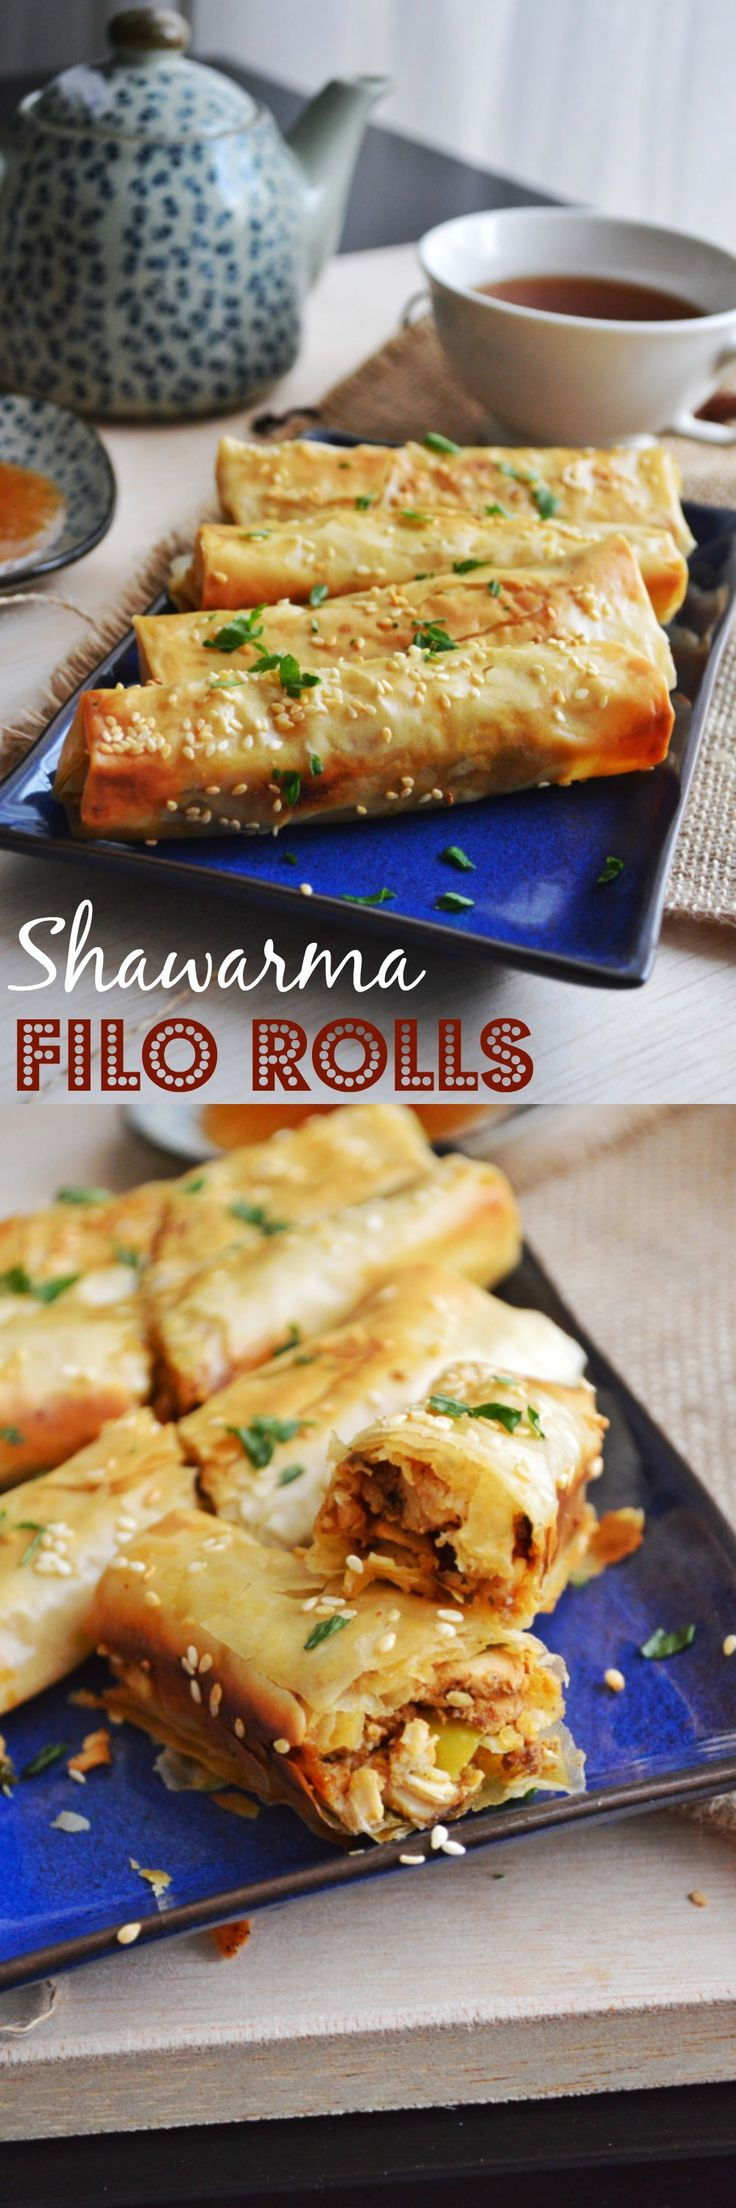 4452 best indian and middle eastern sweets images on pinterest shawarma filo rolls eid recipesramadan recipesarabic forumfinder Gallery